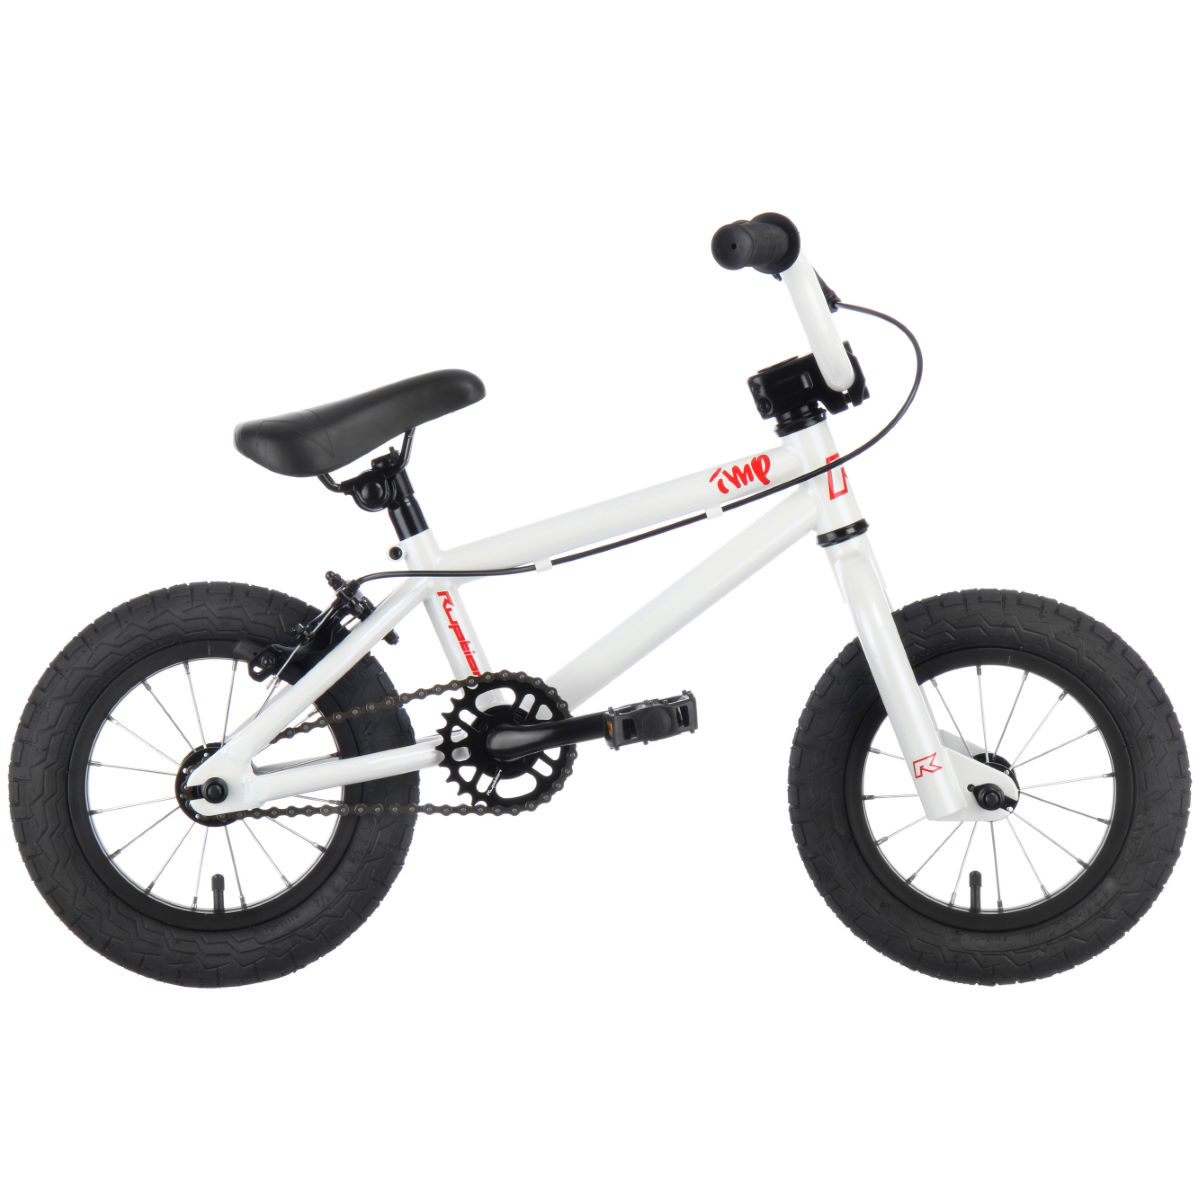 Ruption IMP BMX Bike (2019) - Bicicletas de BMX Freestyle